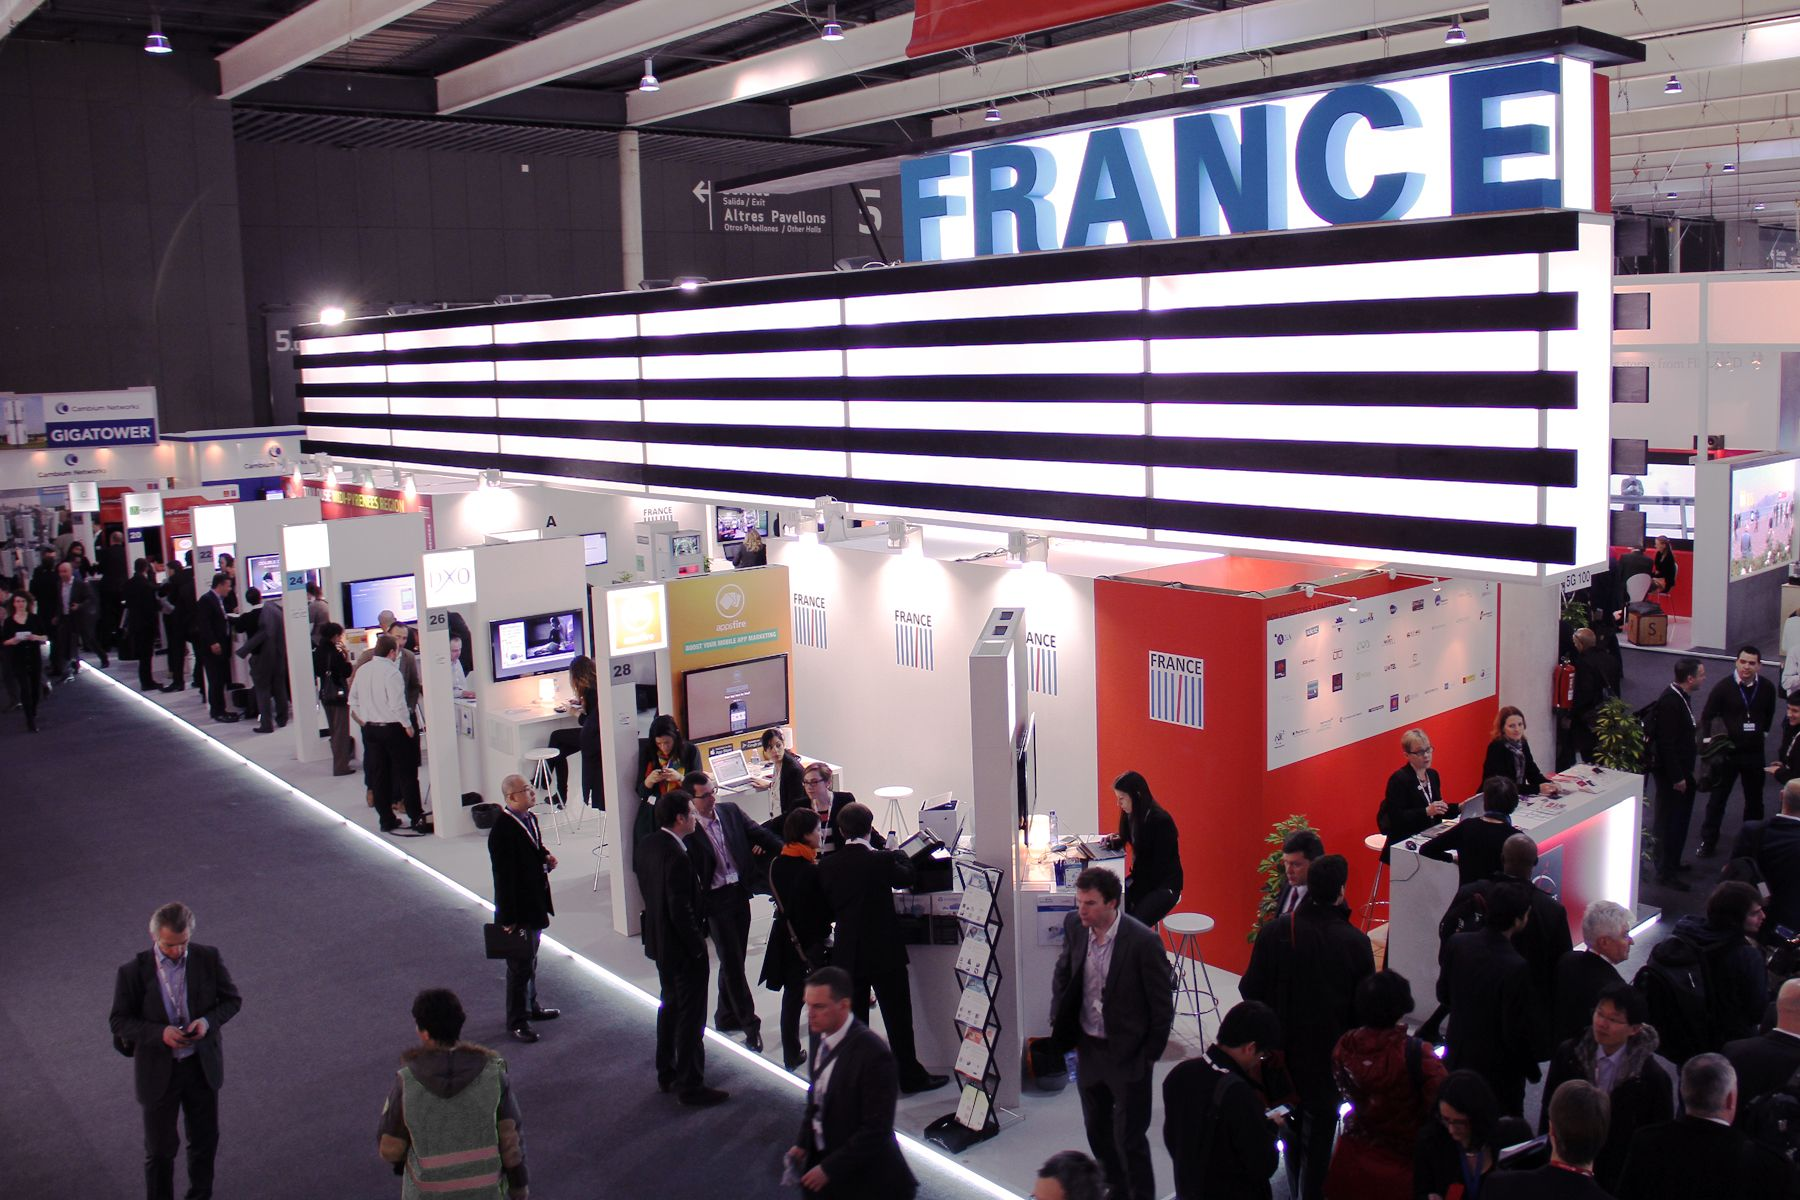 French Pavilion brings 100 innovative companies at Mobile World Congress 2014, Barcelona